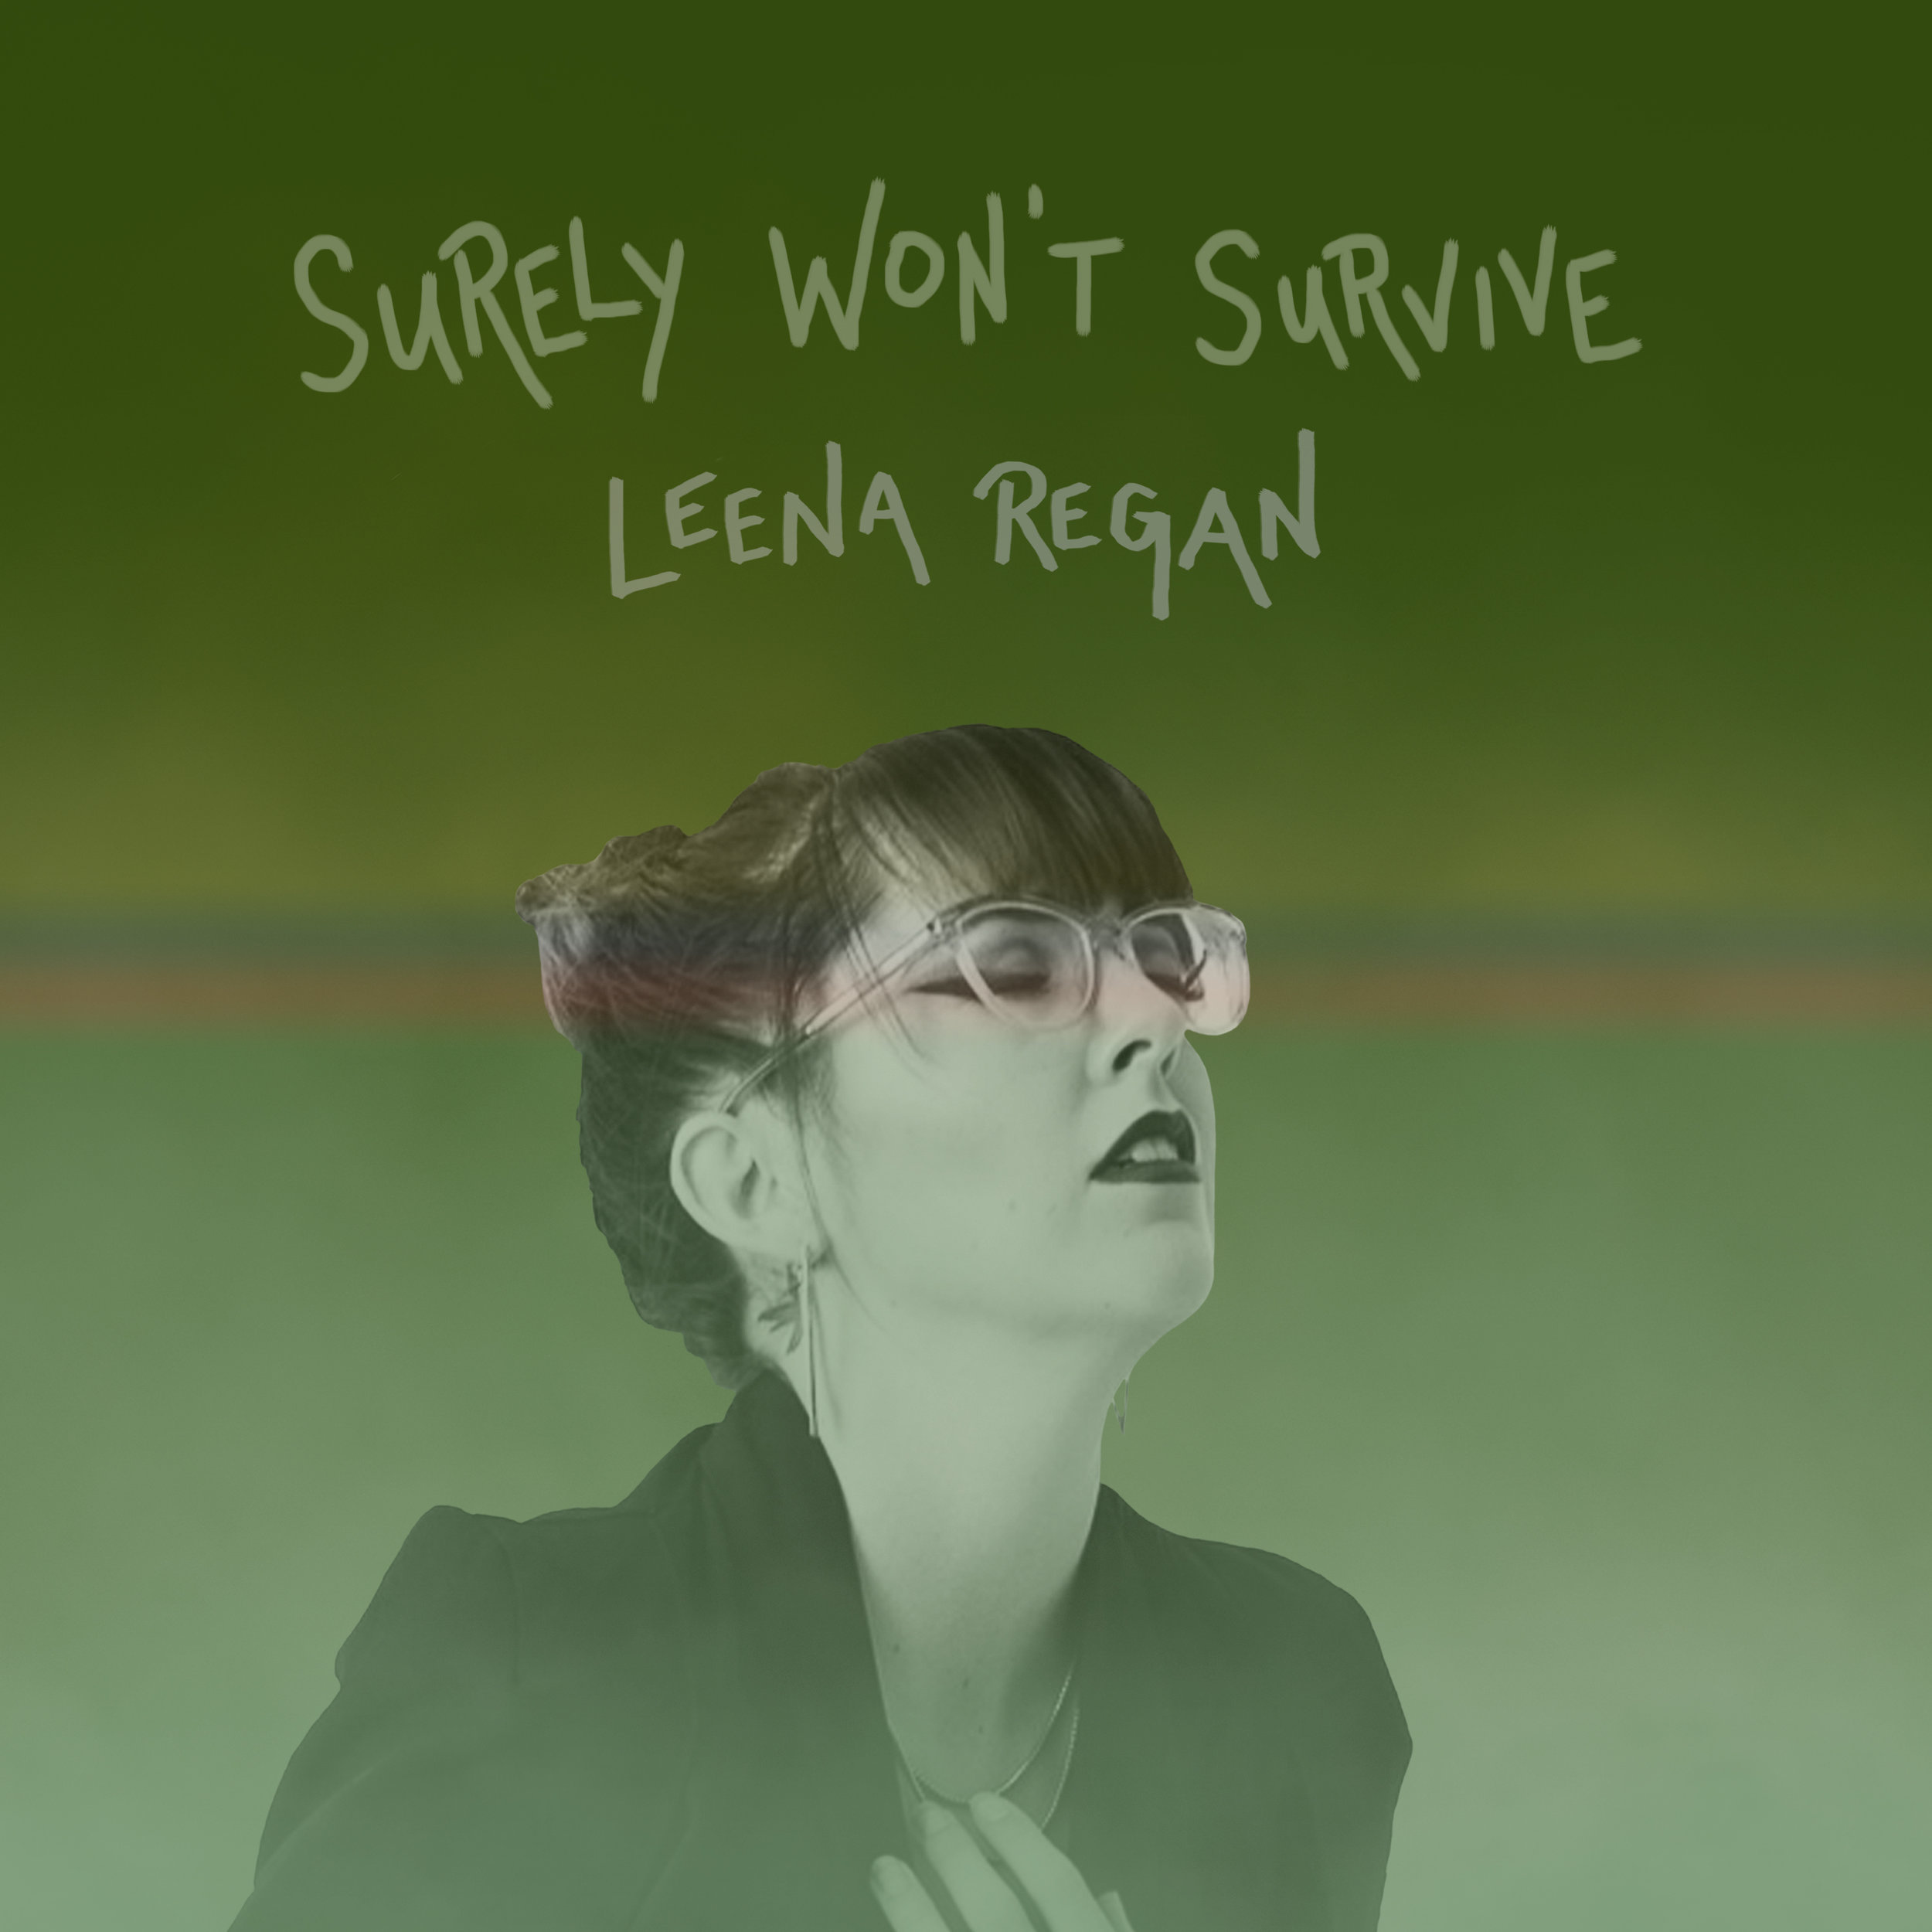 "CLICK THE ABOVE IMAGE FOR DETAILS AND PRESS CONTENT RELATED TO LEENA REGAN'S UPCOMING SINGLE, ""SURELY WON'T SURVIVE."" FOR INQUIRIES, CONTACT INDIEROCKSTARSPR@GMAIL.COM."